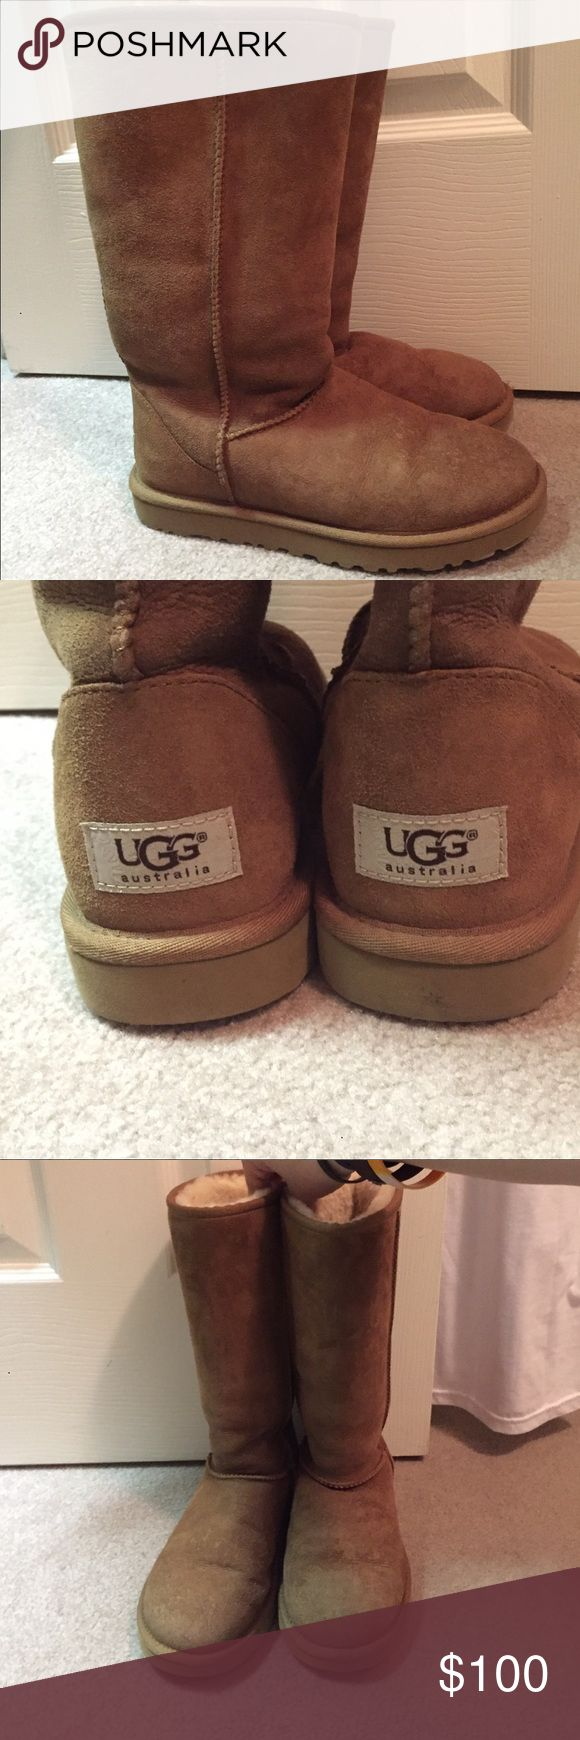 Original UGG BOOTS classic Great condition and tons of life left in them. Only worn a couple times. UGG Shoes Winter & Rain Boots